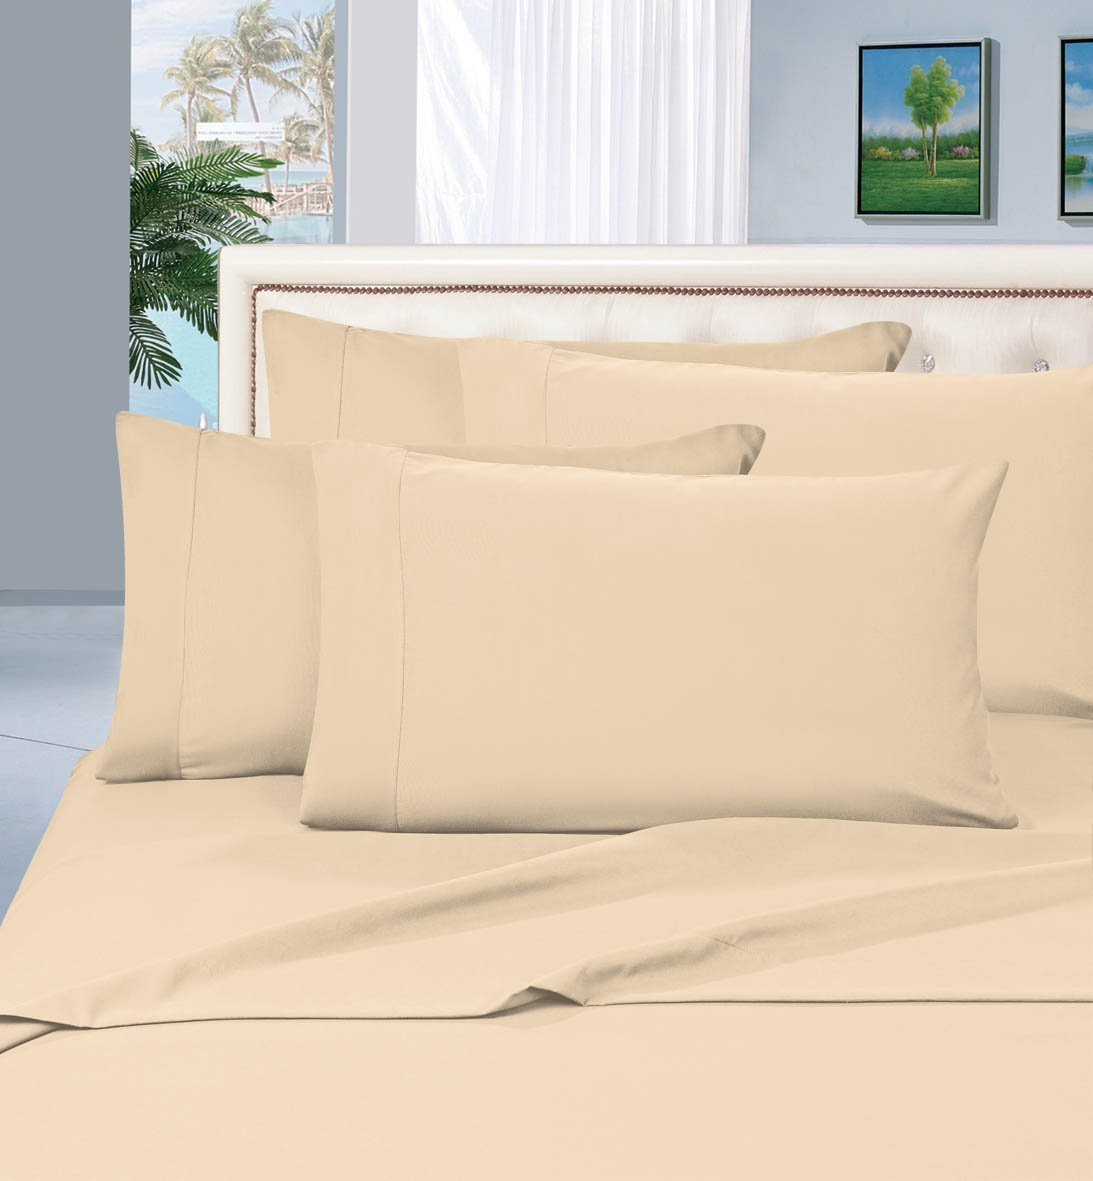 """WRINKLE & FADE RESISTANT 1500 THREAD COUNT Egyptian Quality Luxury 2-PIECE Duvet Cover Set , Twin/Twin XL, Beige, Duvet set includes 1 Duvet Cover 69"""" x 90"""".., By Elegant Comfort"""